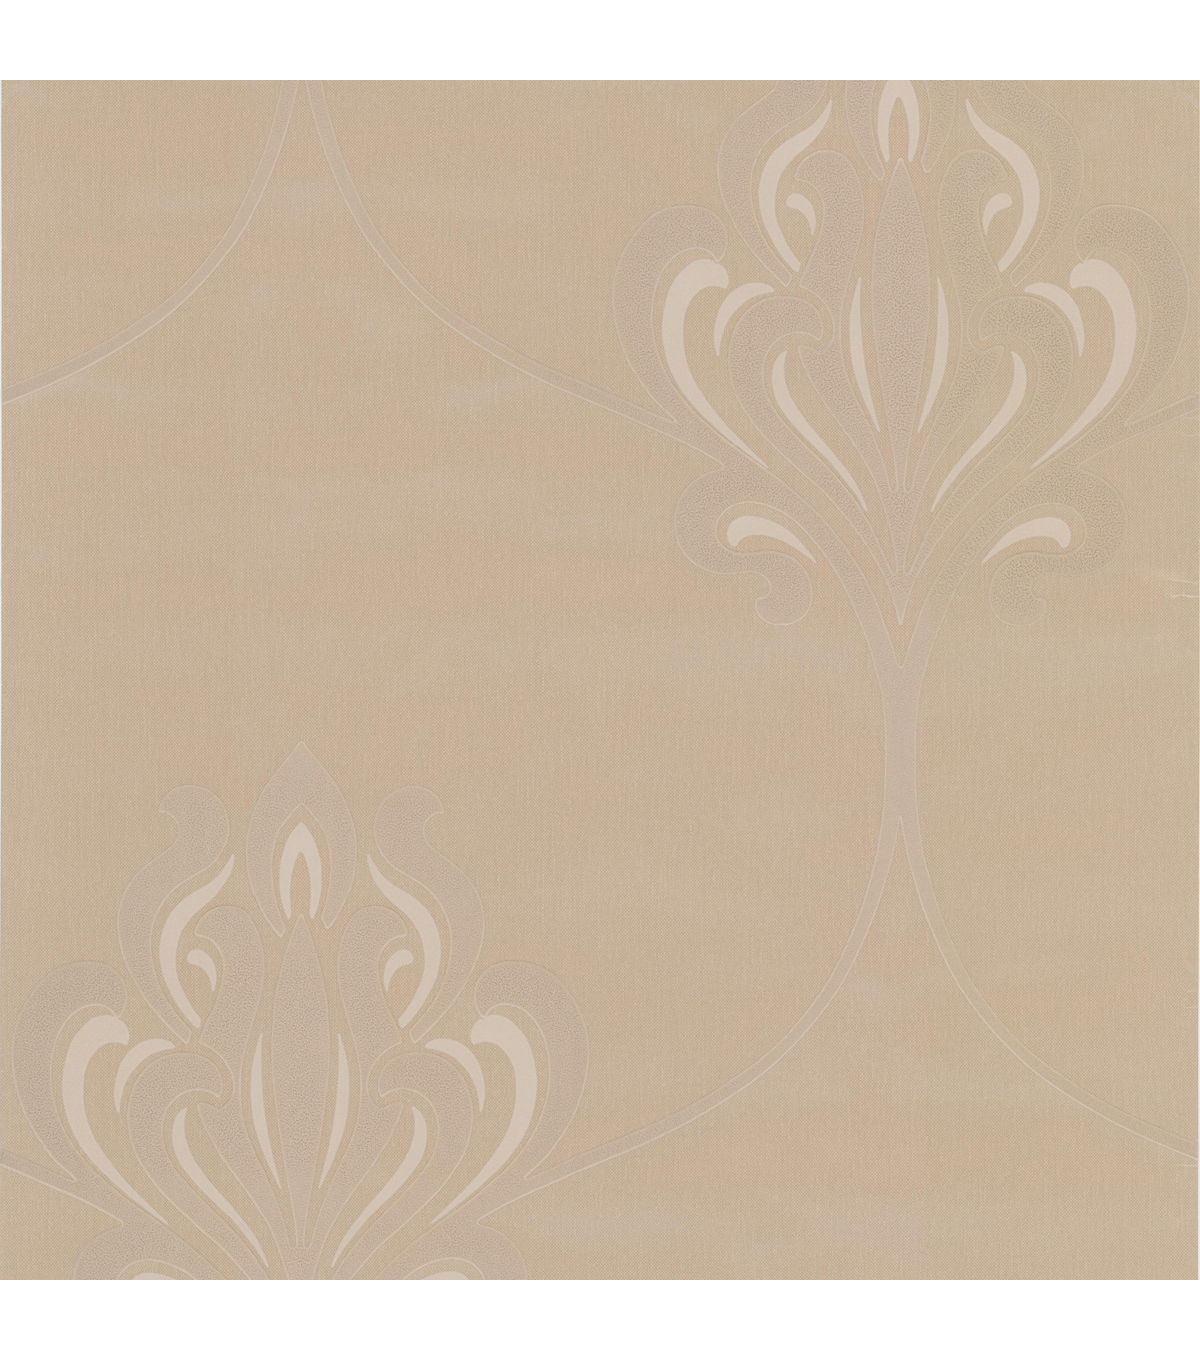 Orfeo Taupe Nouveau Damask Wallpaper Sample